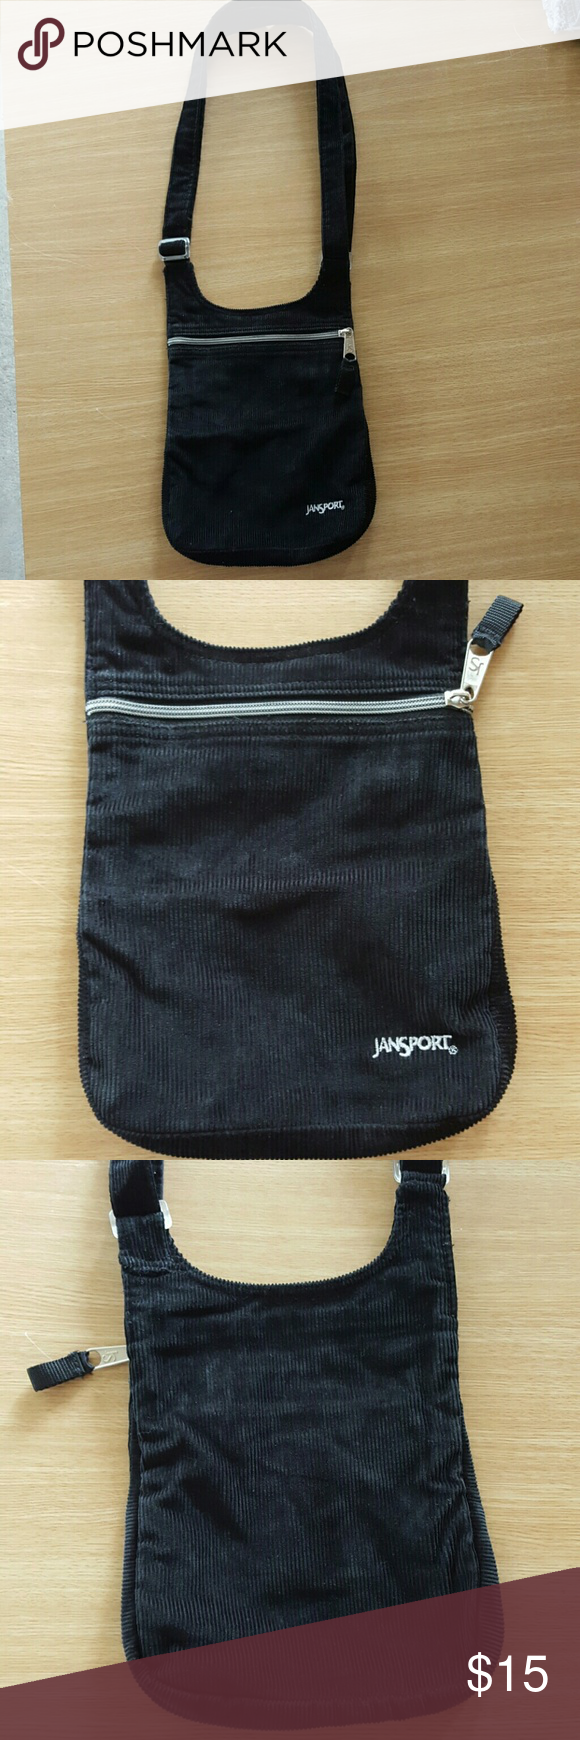 JanSport cross body bag Black ribbed felt cross body bag. Has adjustable strap, silver zipper across top. Big pouch with zippered pouch on inside back wall. Excellent condition. Jansport Bags Crossbody Bags